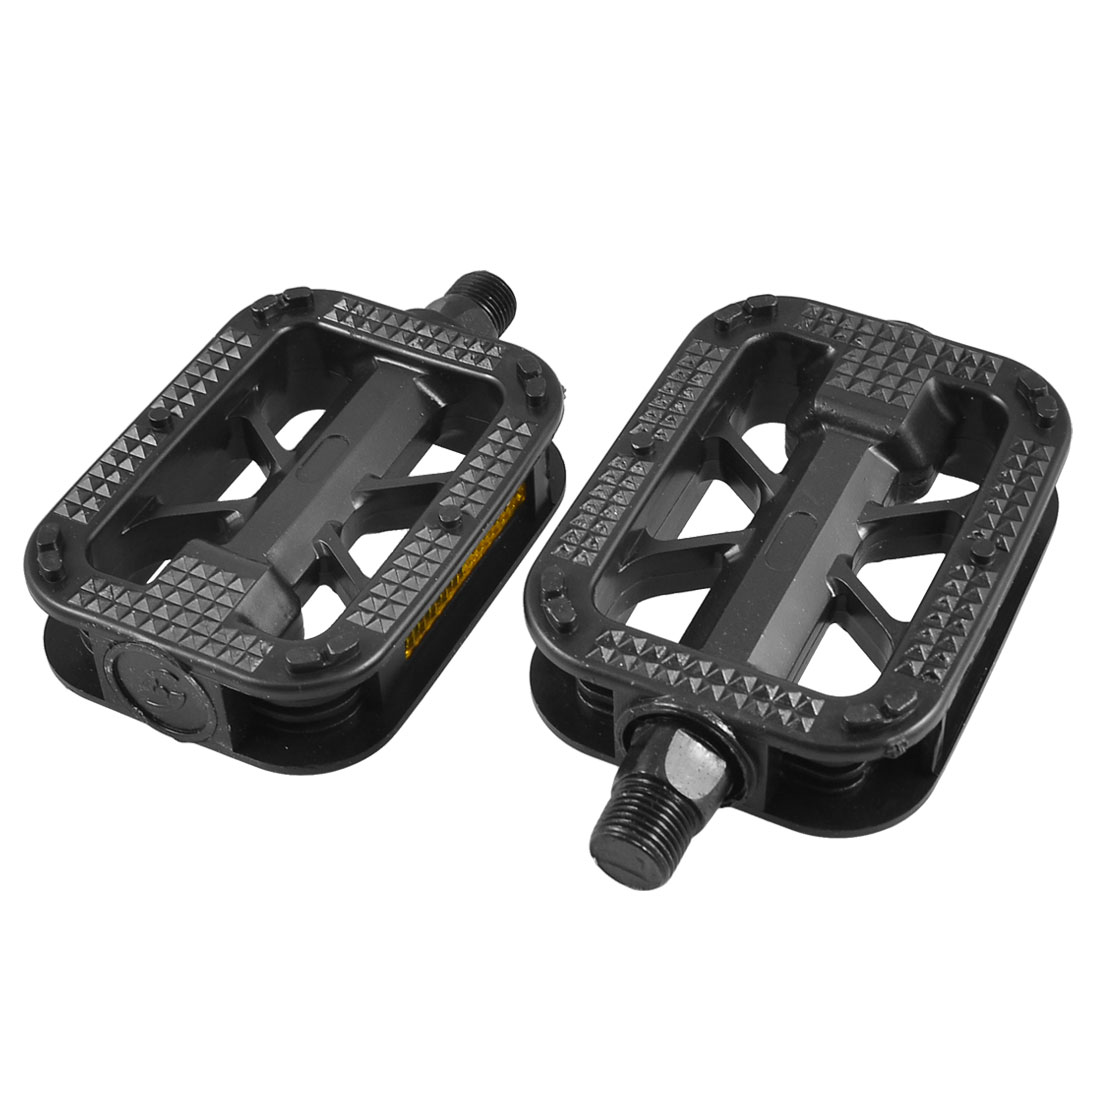 14mm Thread Mountain Road Bike Black Plastic Platform Pedals 2 Pcs